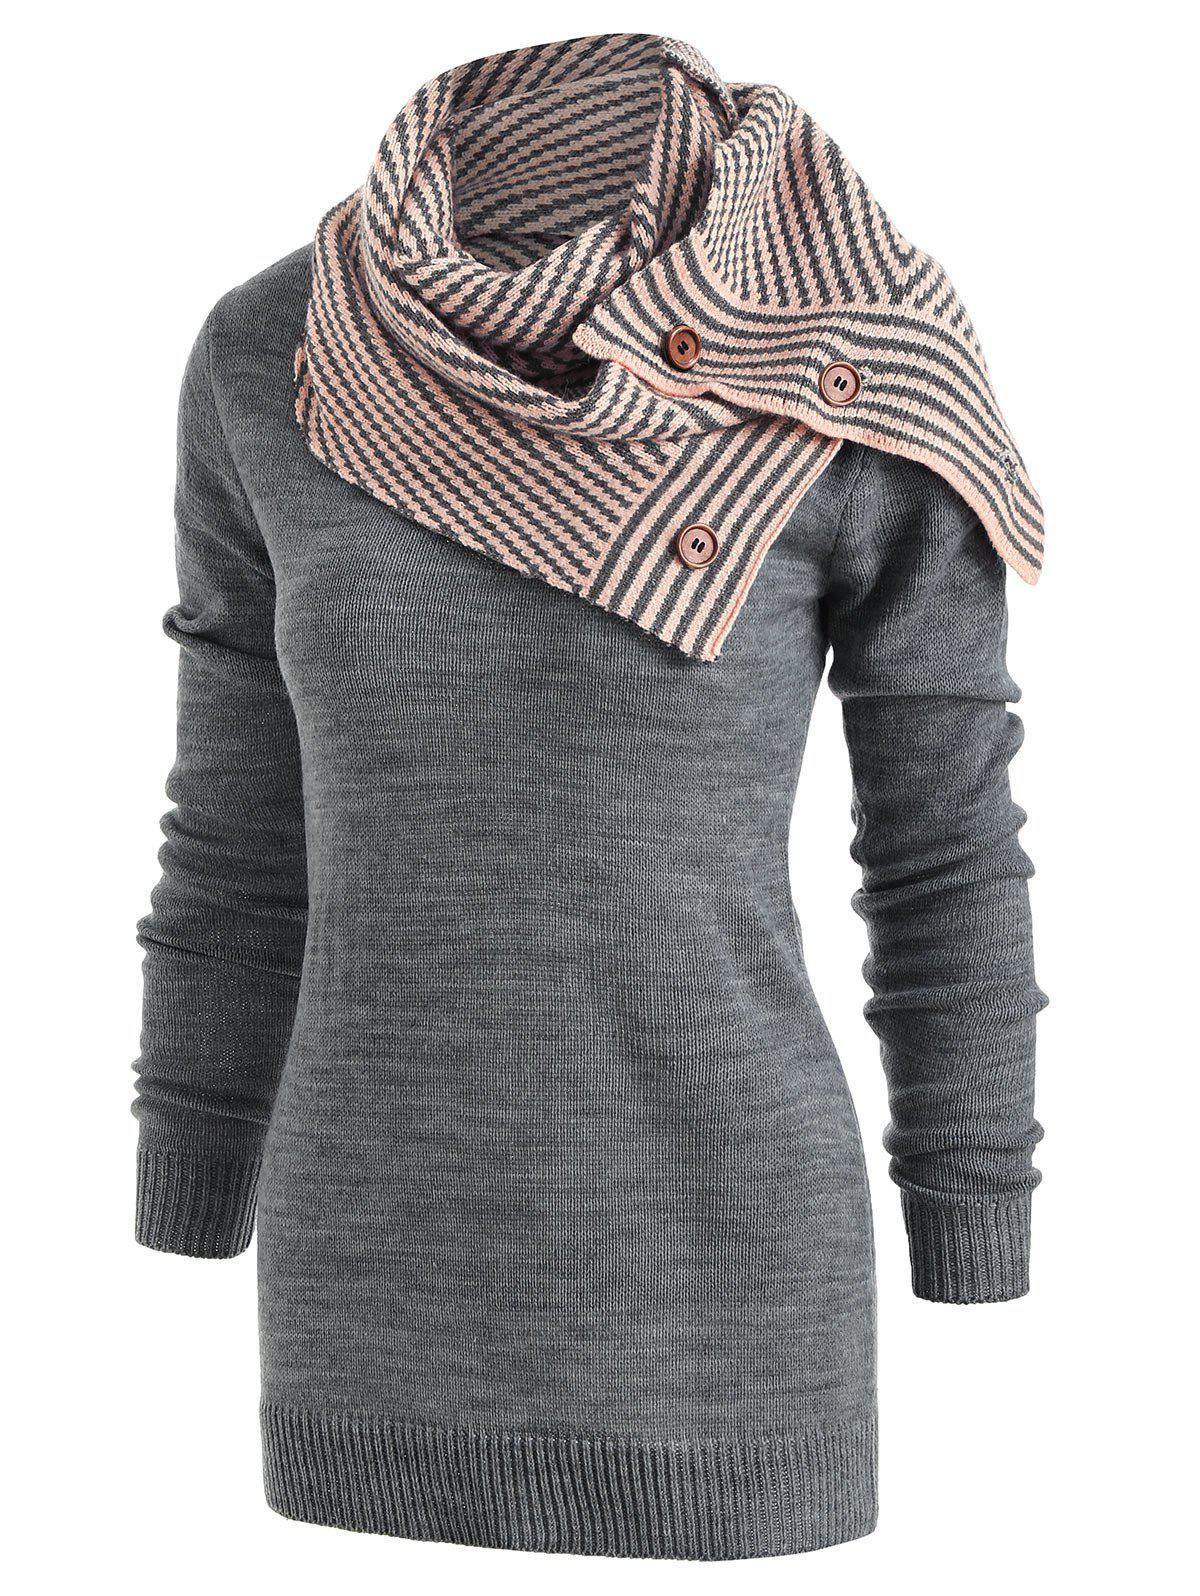 Pullover Sweater with Striped Scarf - GRAY M